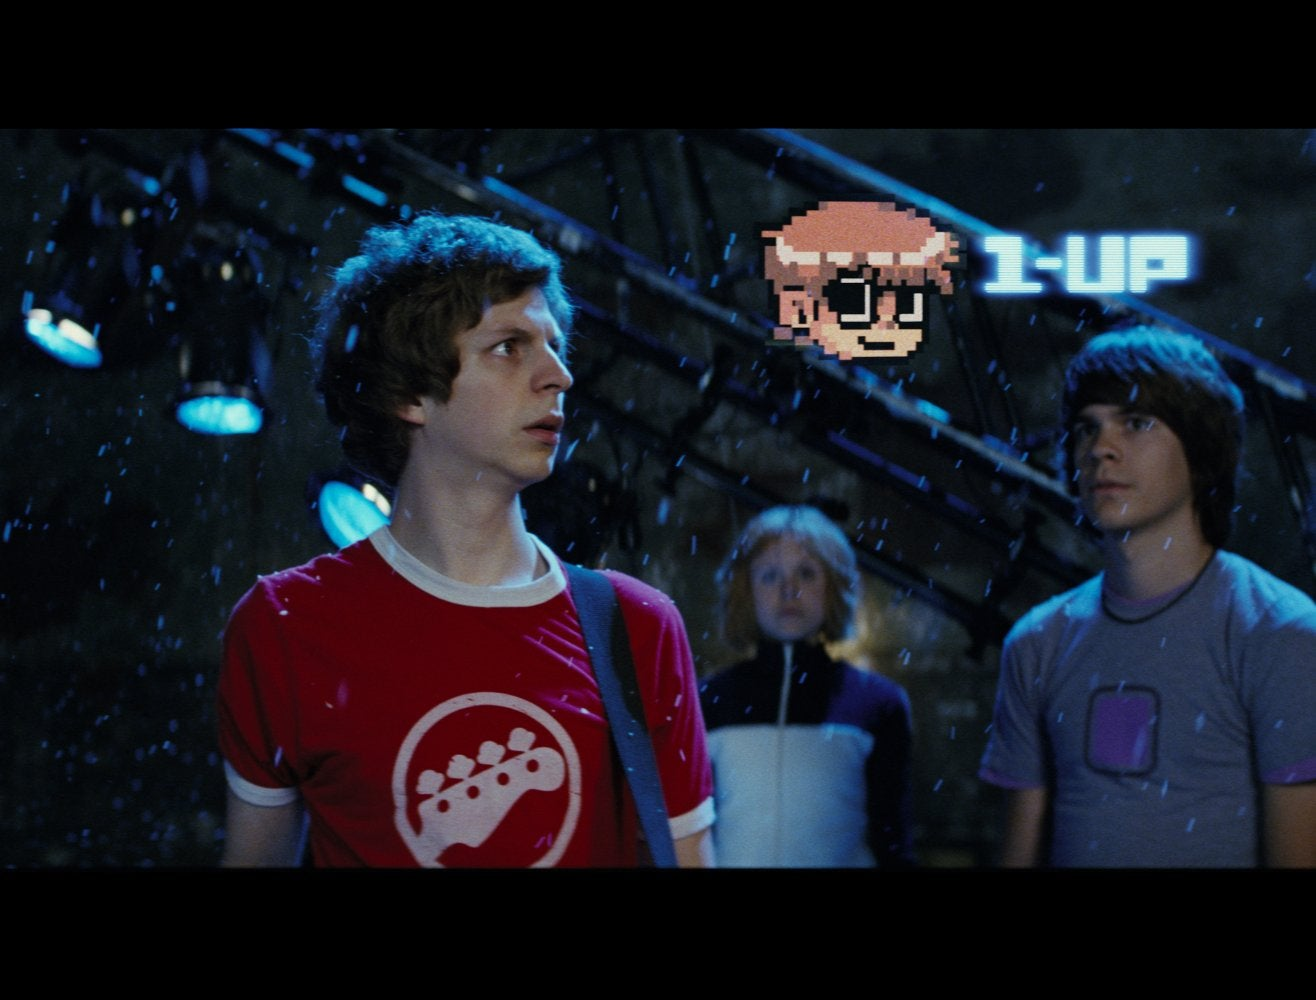 Michael Cera, Alison Pill, and Johnny Simmons in Scott Pilgrim vs. the World.